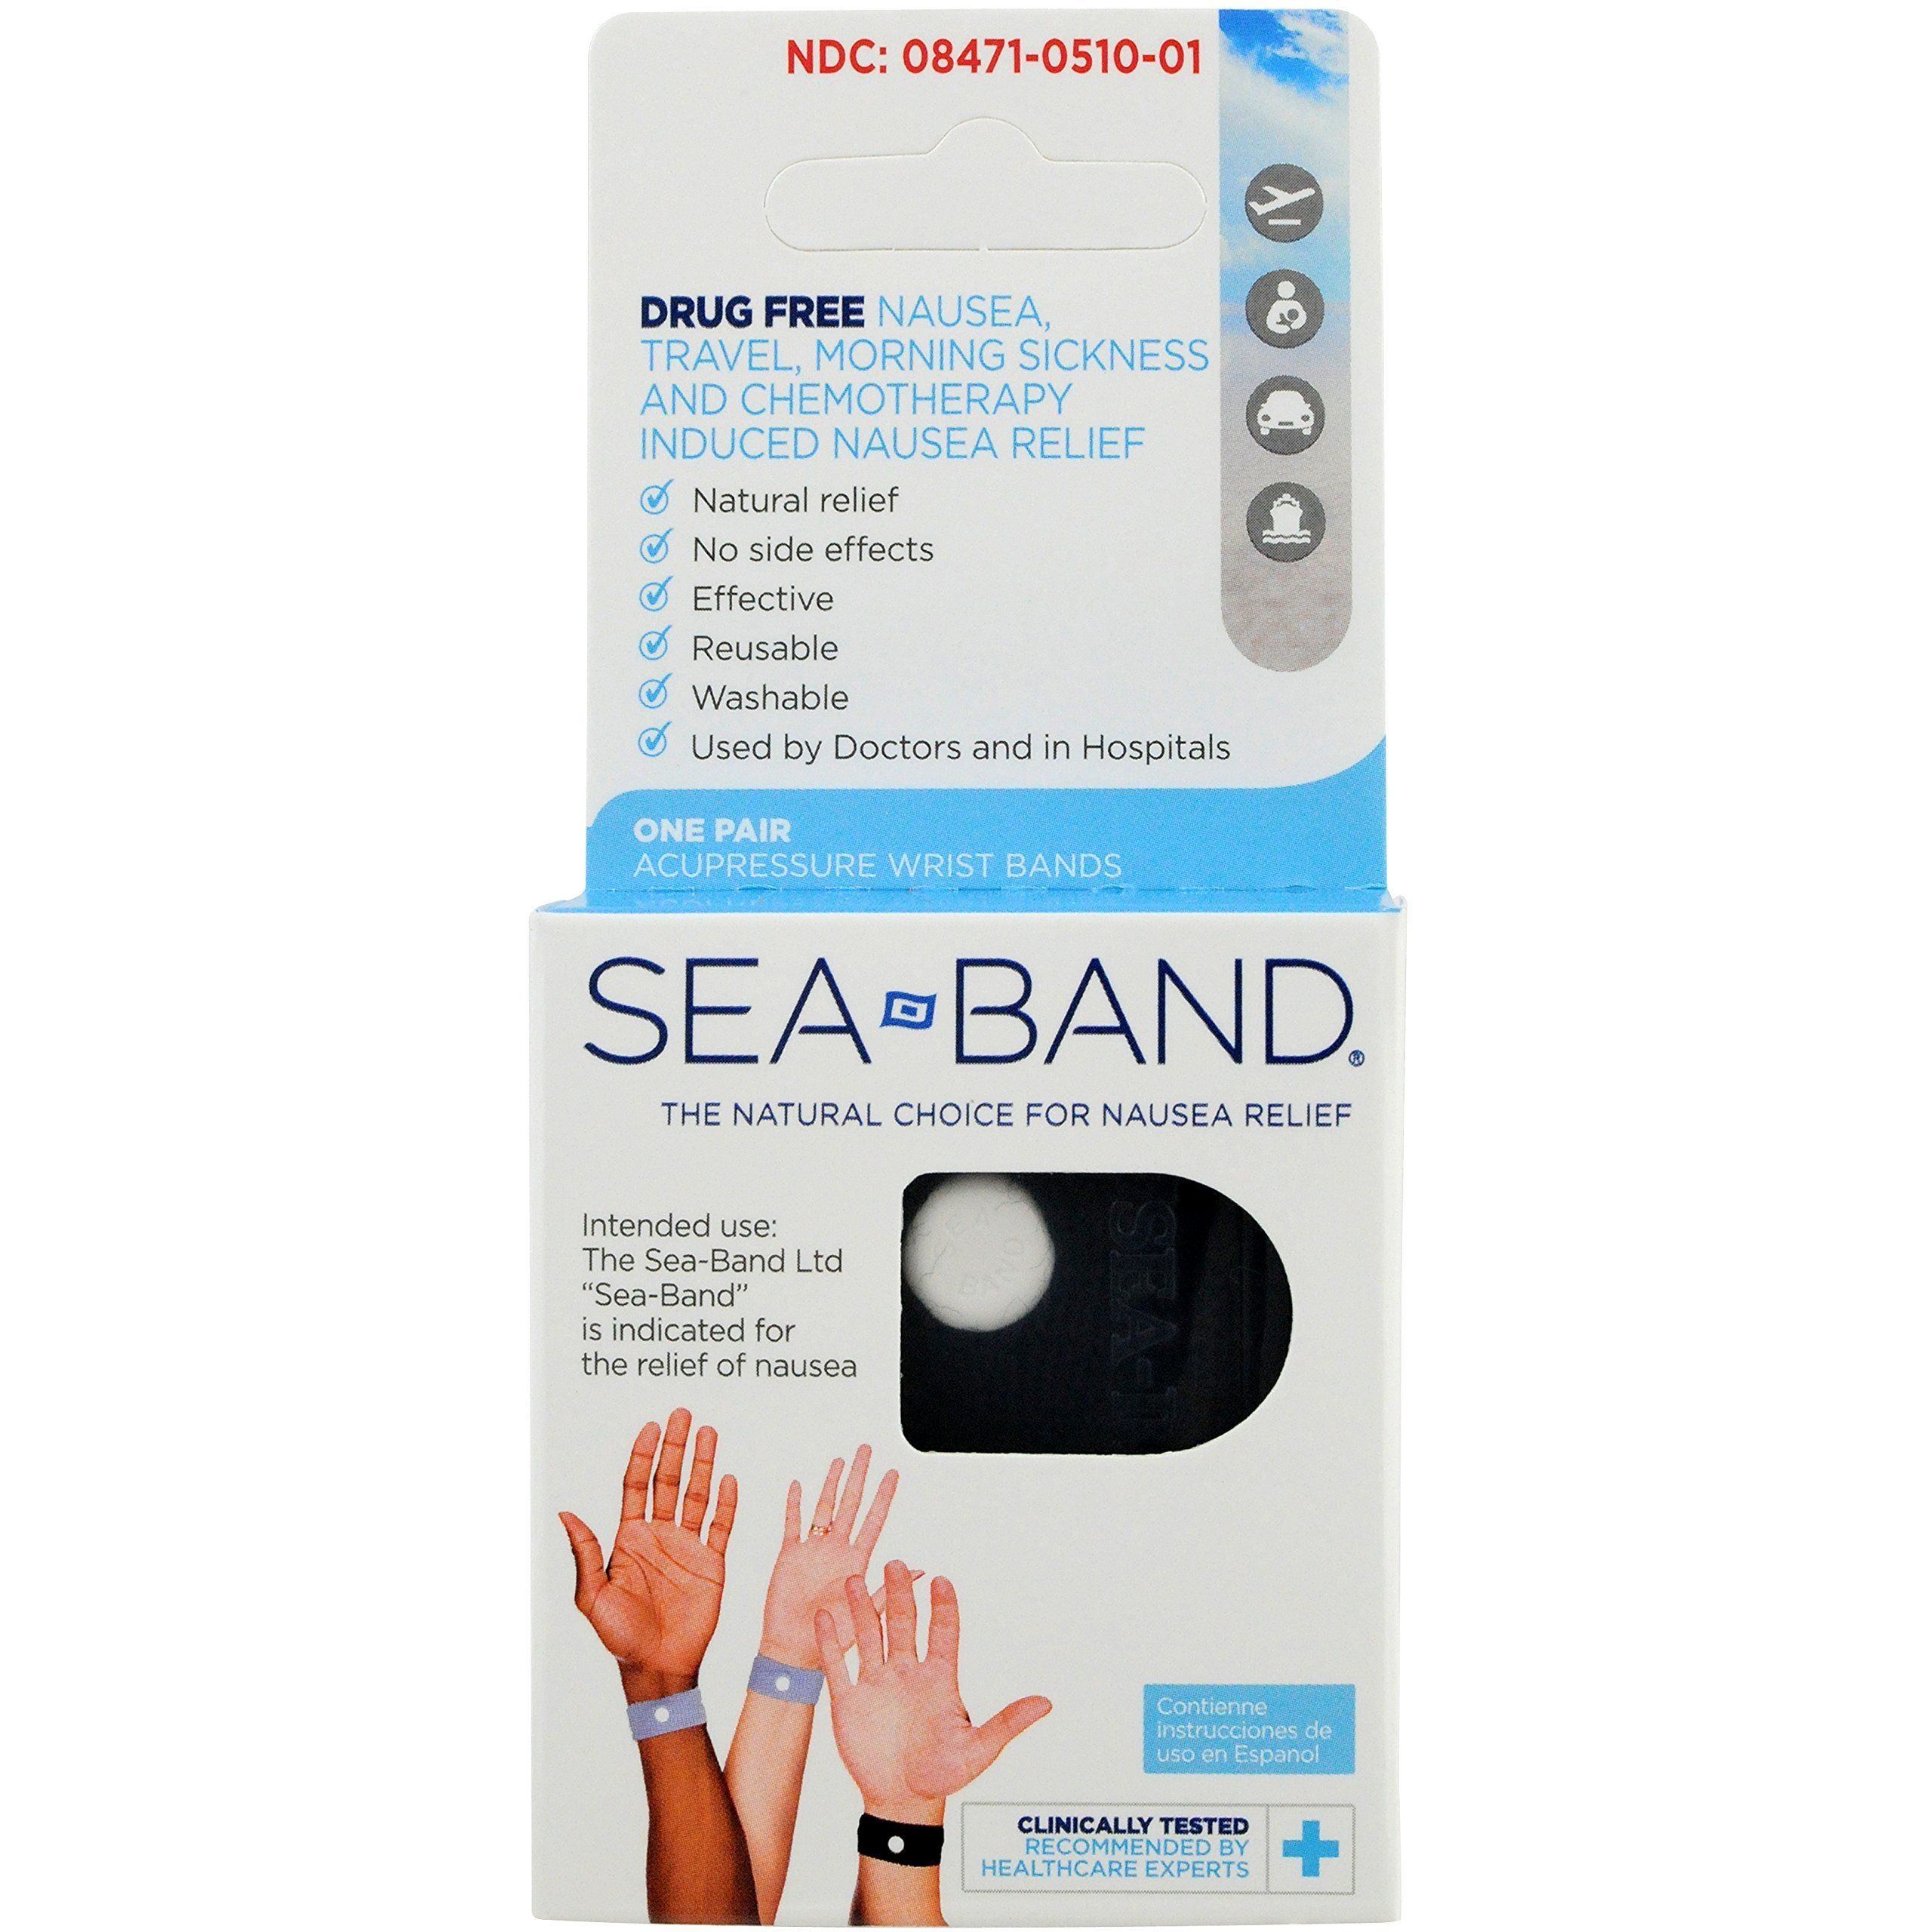 Sea-Band Adult Wristband, Natural Nausea Relief, 1-Pair, Colors May Vary